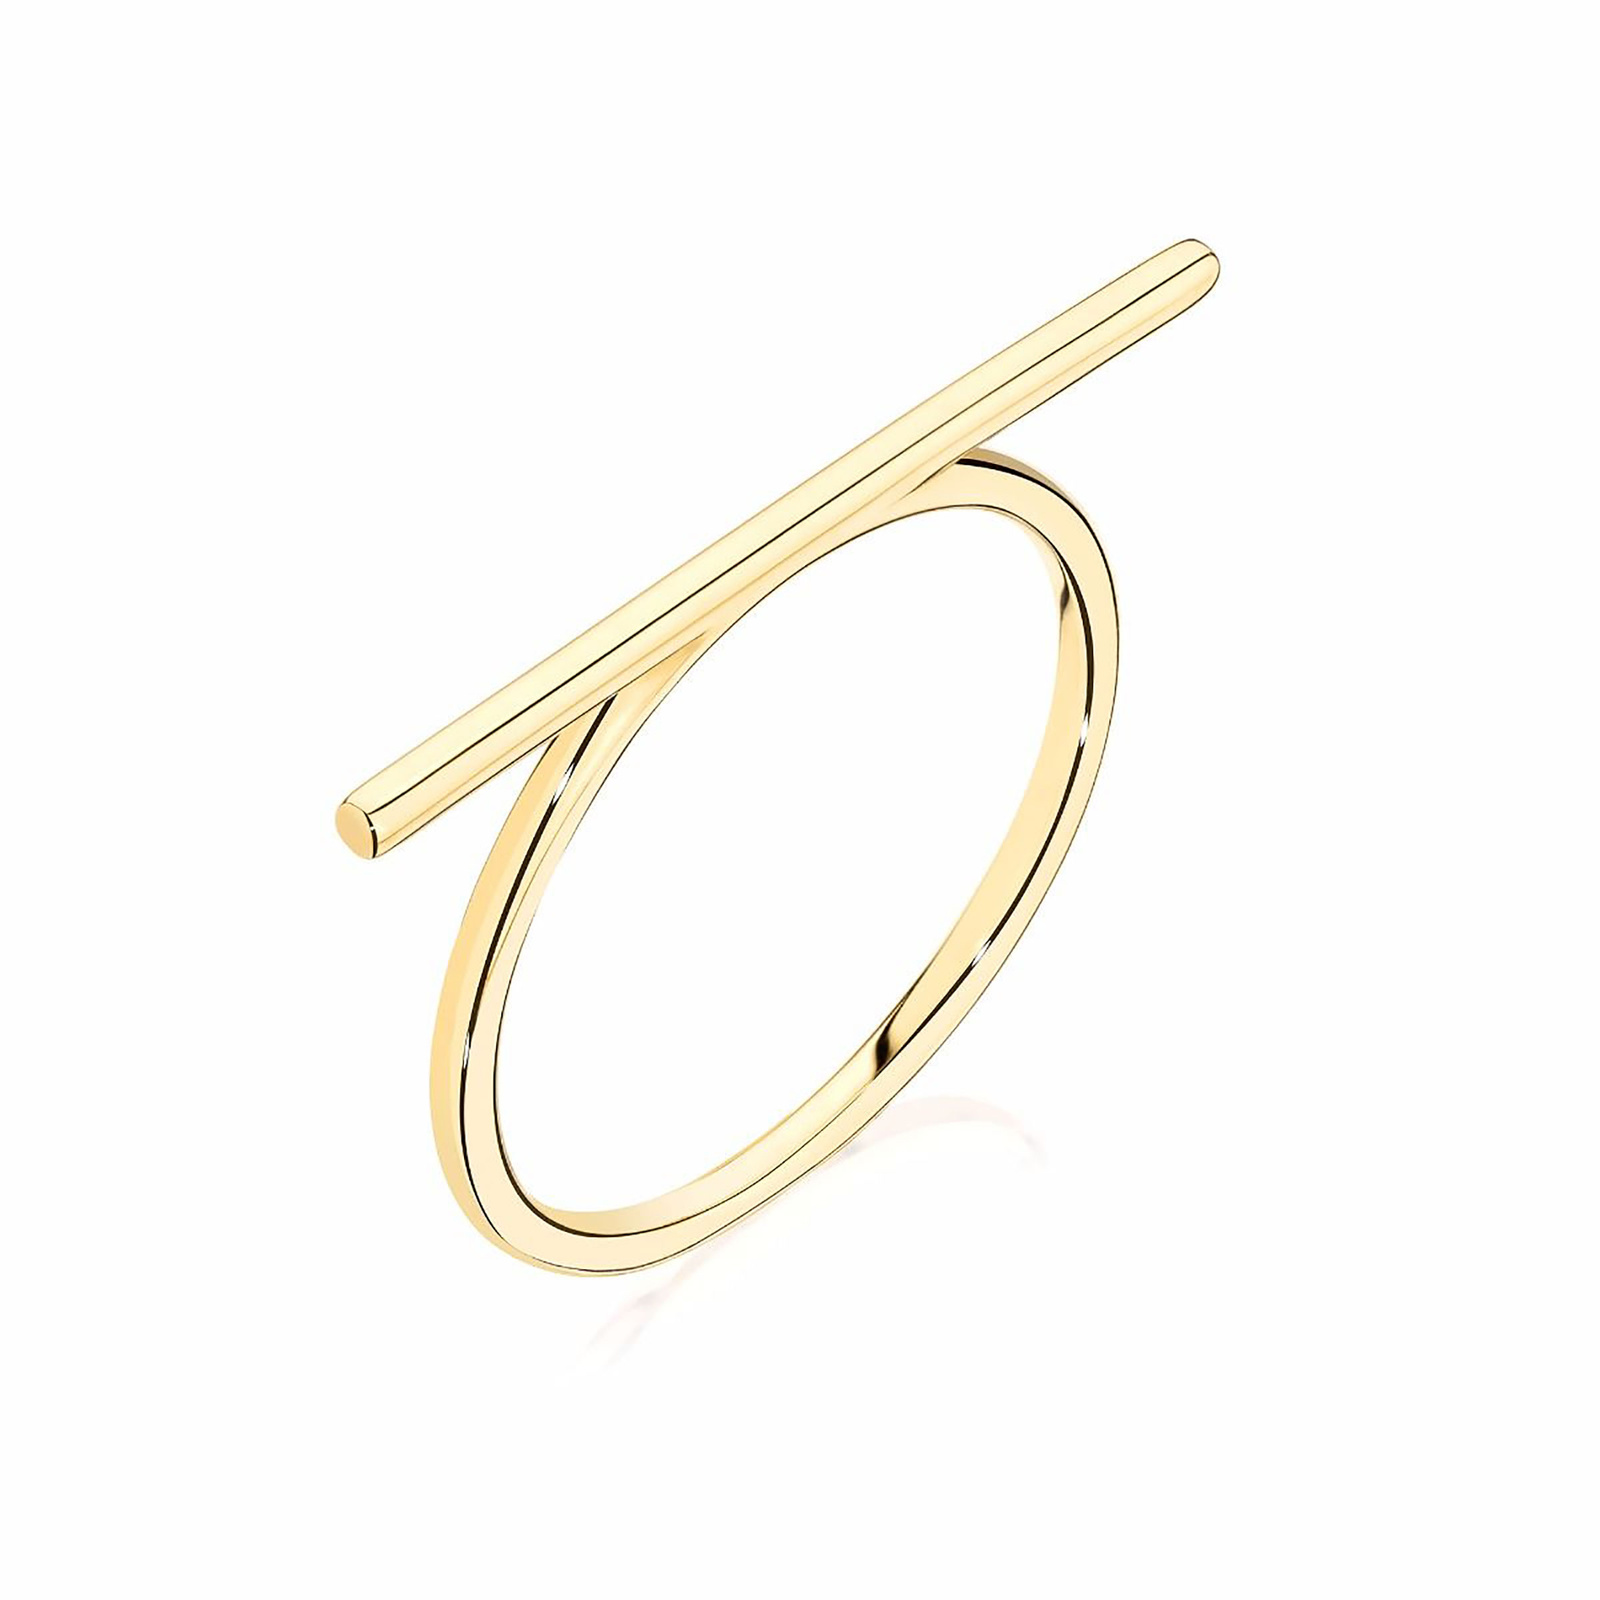 Birks Yellow Gold Bar Ring- Ring Size K